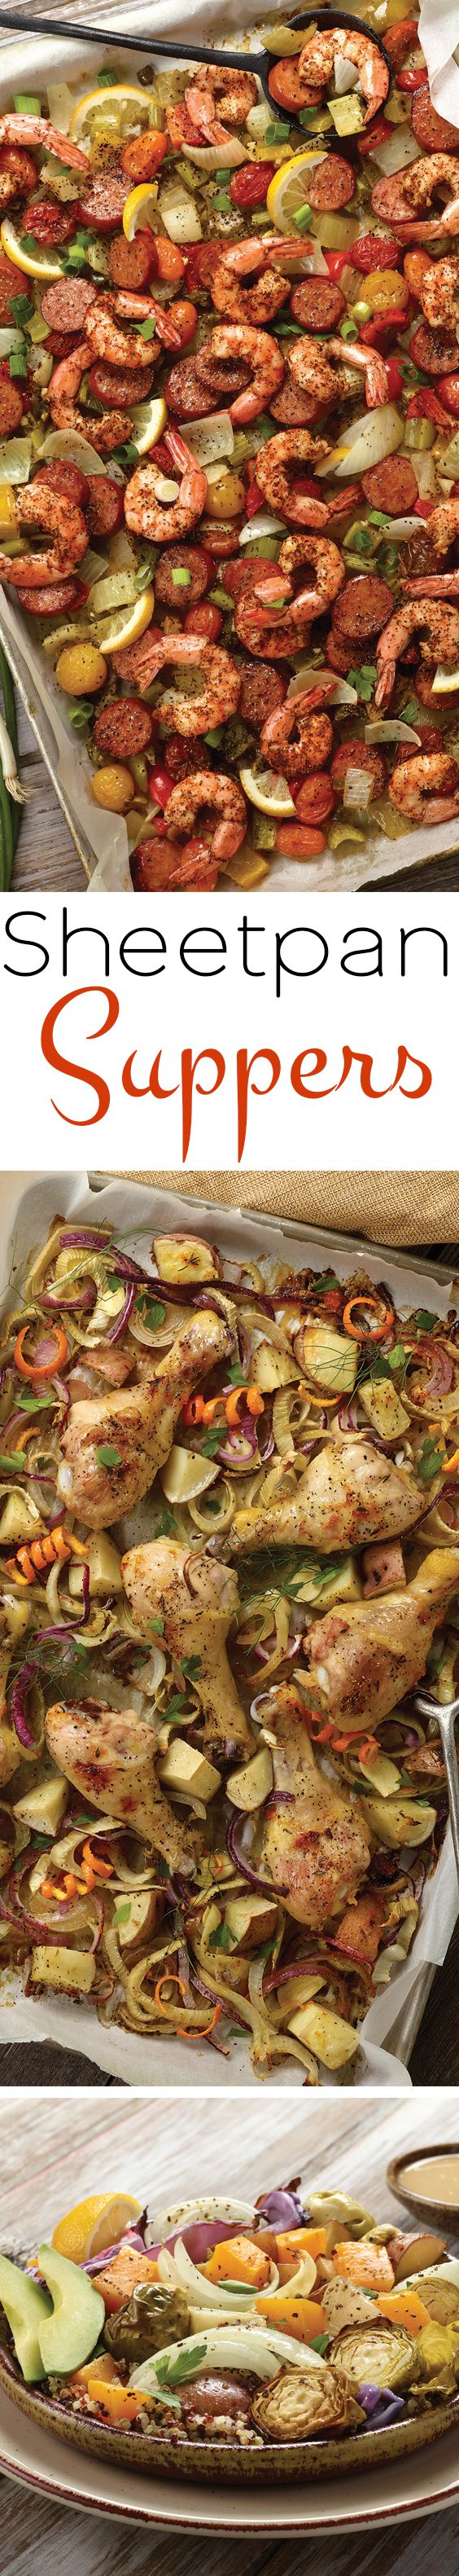 Make supper a cinch with Spicy Sheet Pan Roasted Jambalaya, Easy Drumstick-Quinoa Sheet Pan Supper and Sheet Pan-Style Buddha Bowls.